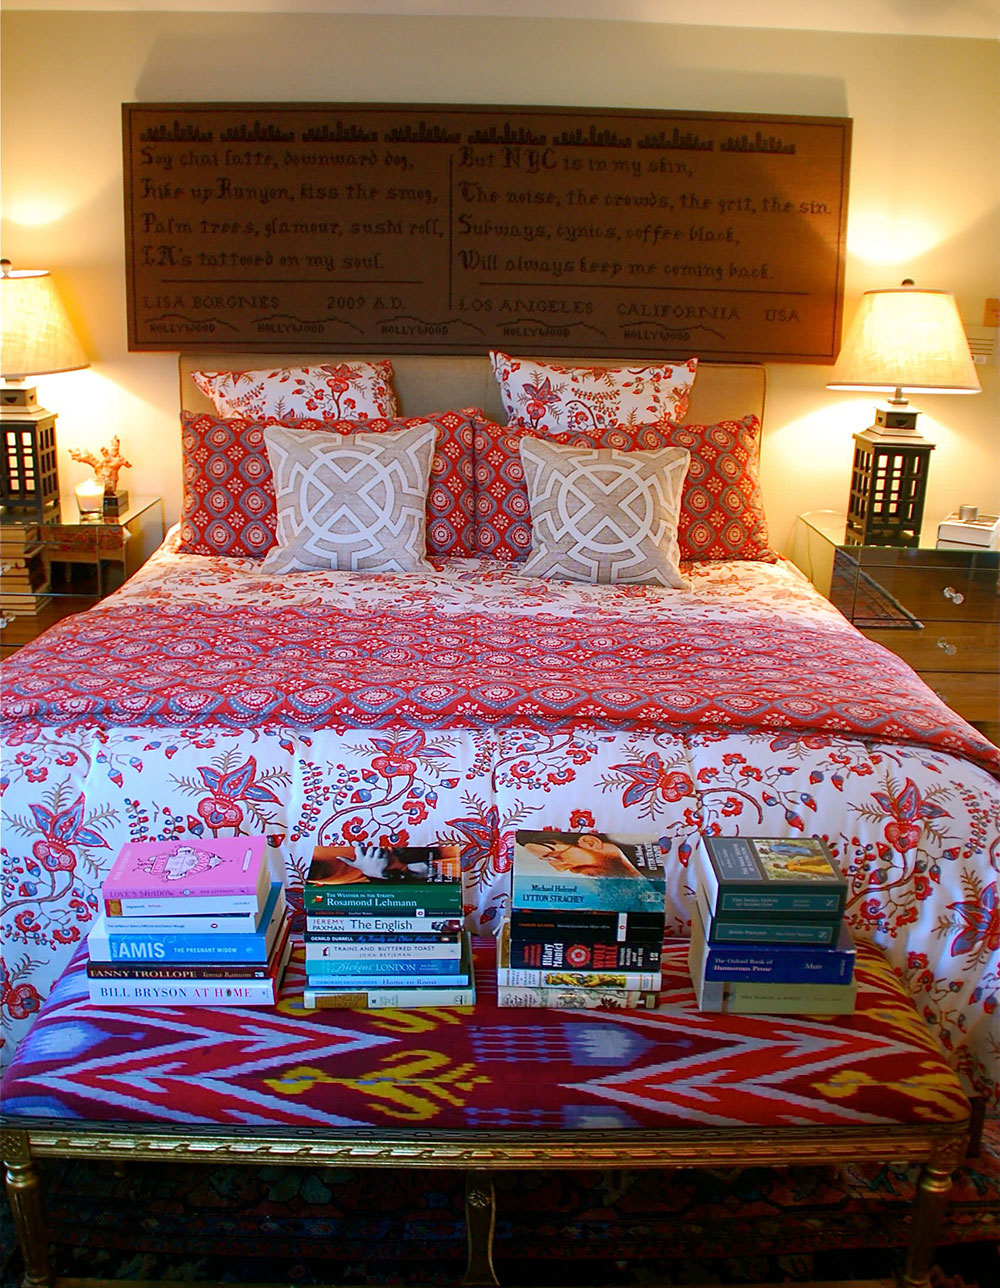 Bedroom-by-Lisa-Borgnes-Giramonti How to tidy up your bedroom and make it look great